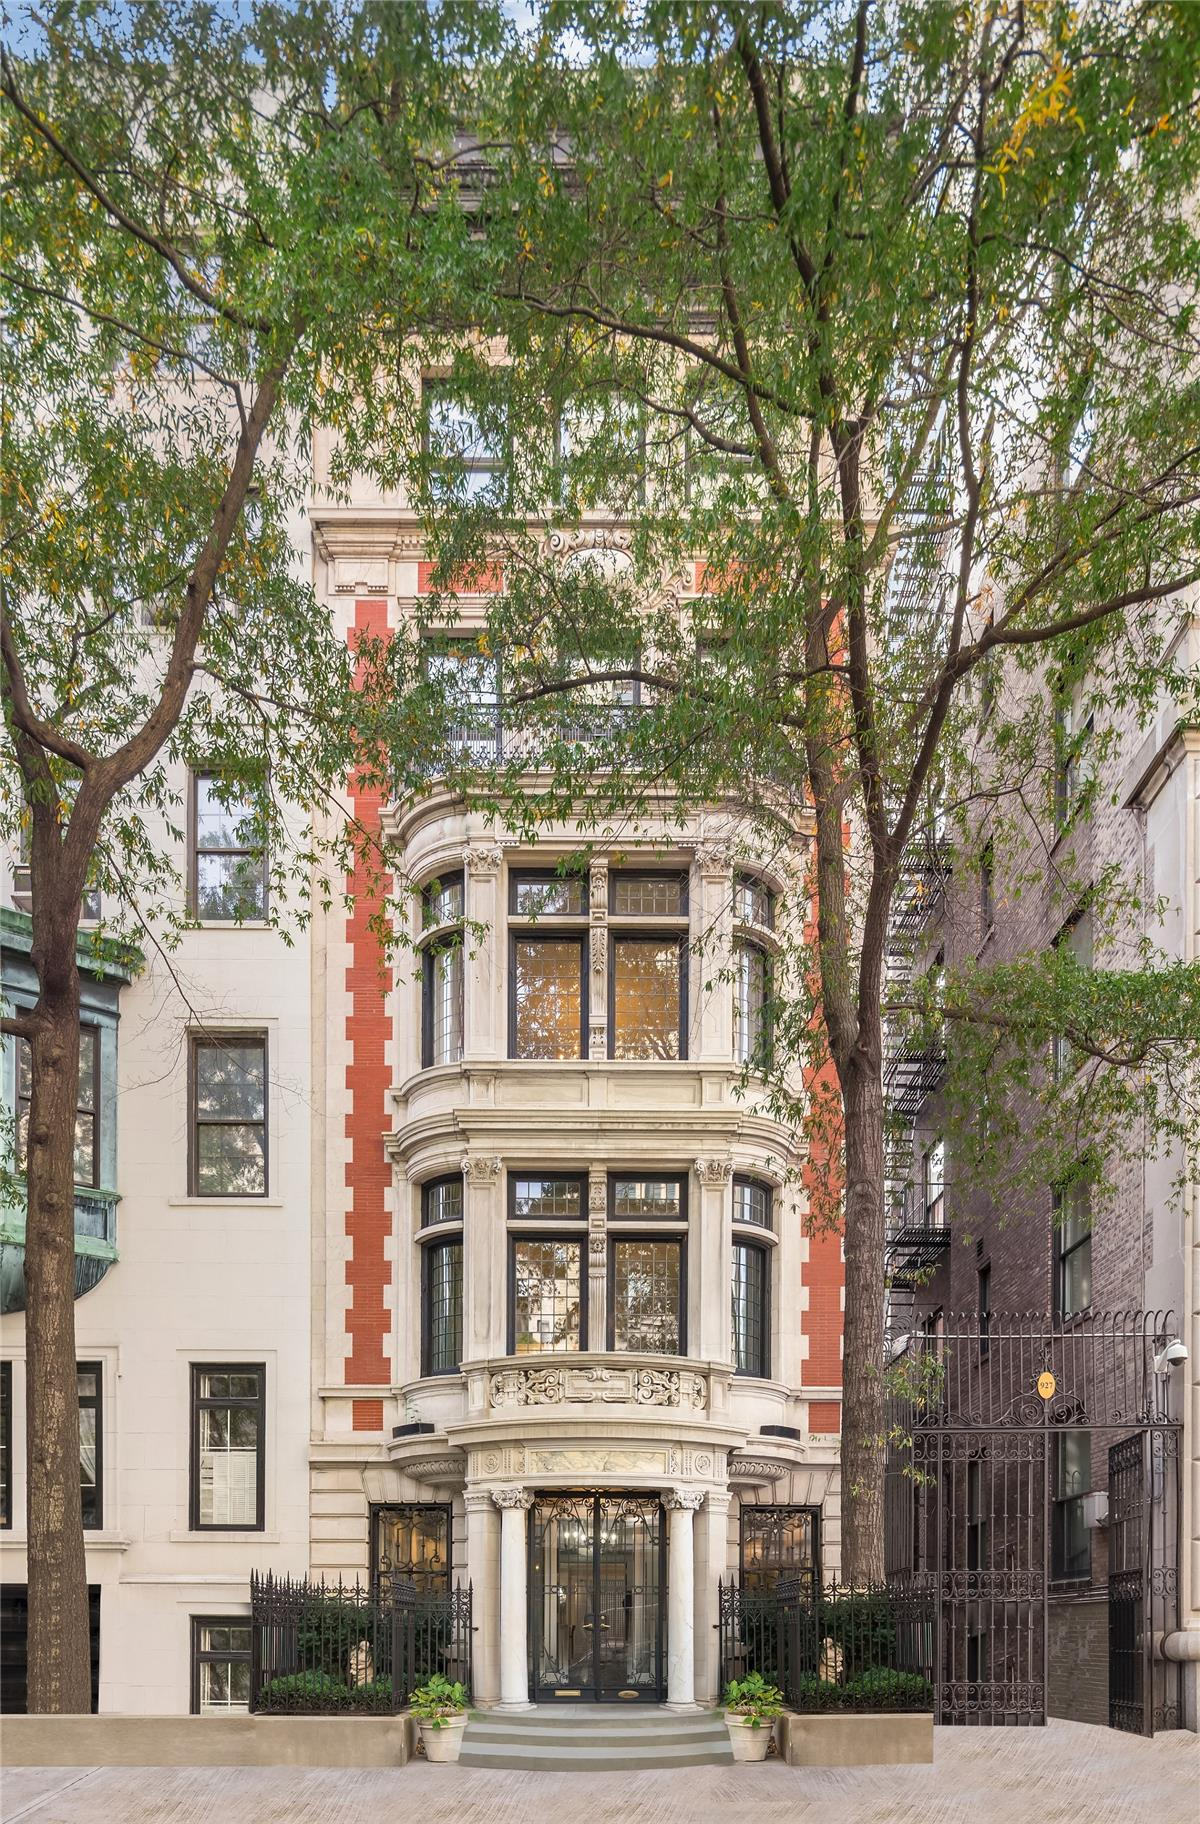 Single Family Home for Sale at 4 East 74th Street 4 East 74th Street New York, New York 10021 United States